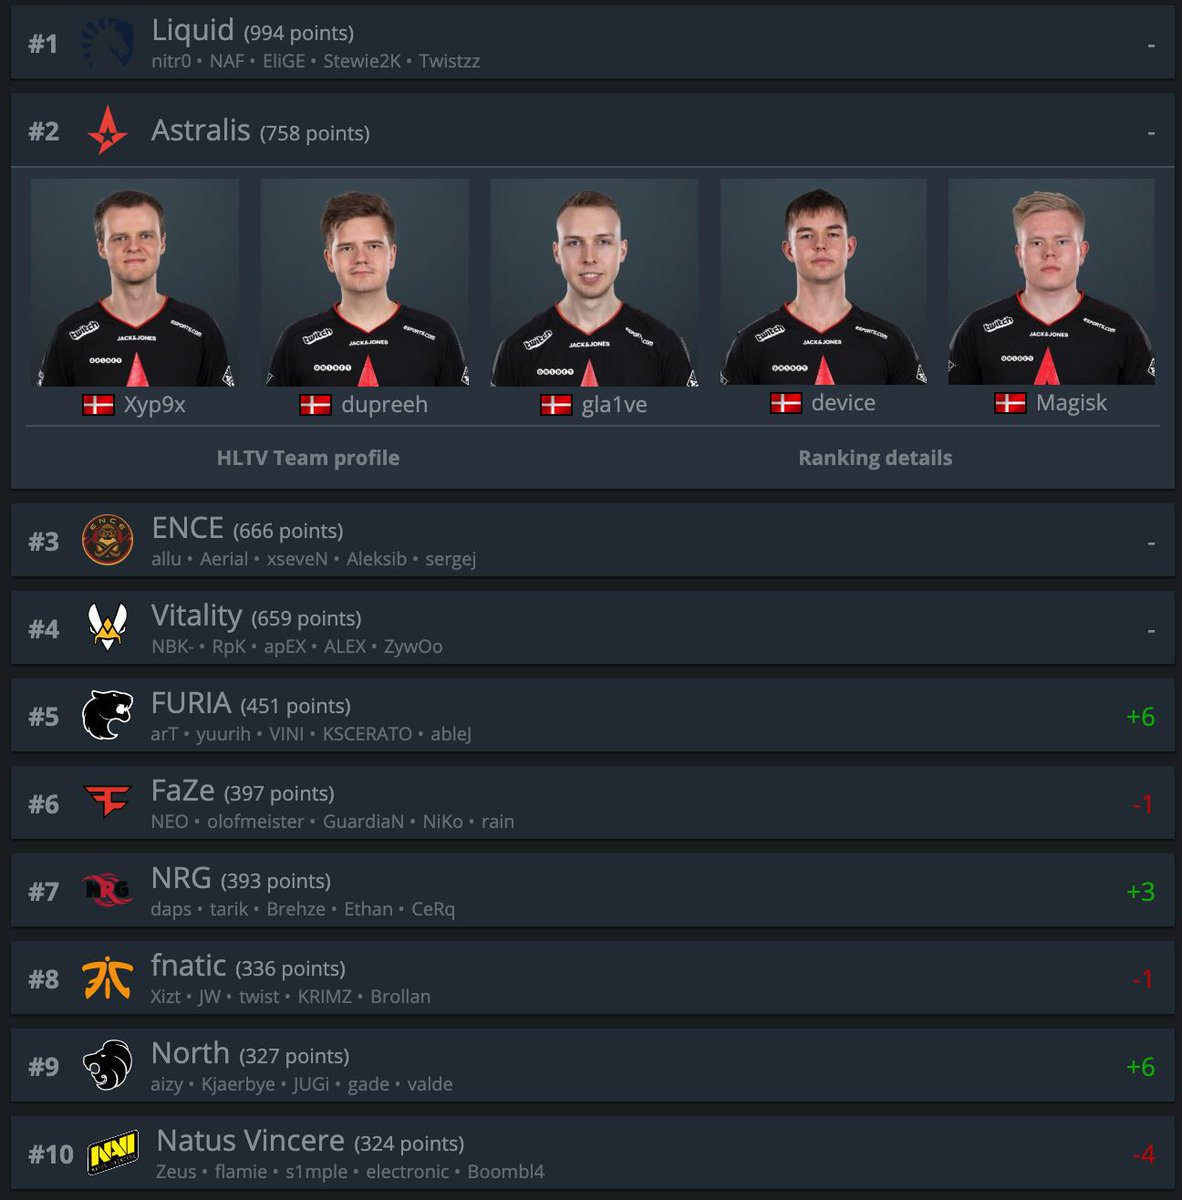 Status quo in the World Rankings for us as we start preparing for #ESLProLeague finals next week!   We are working hard to improve 🙏  #ToTheStars